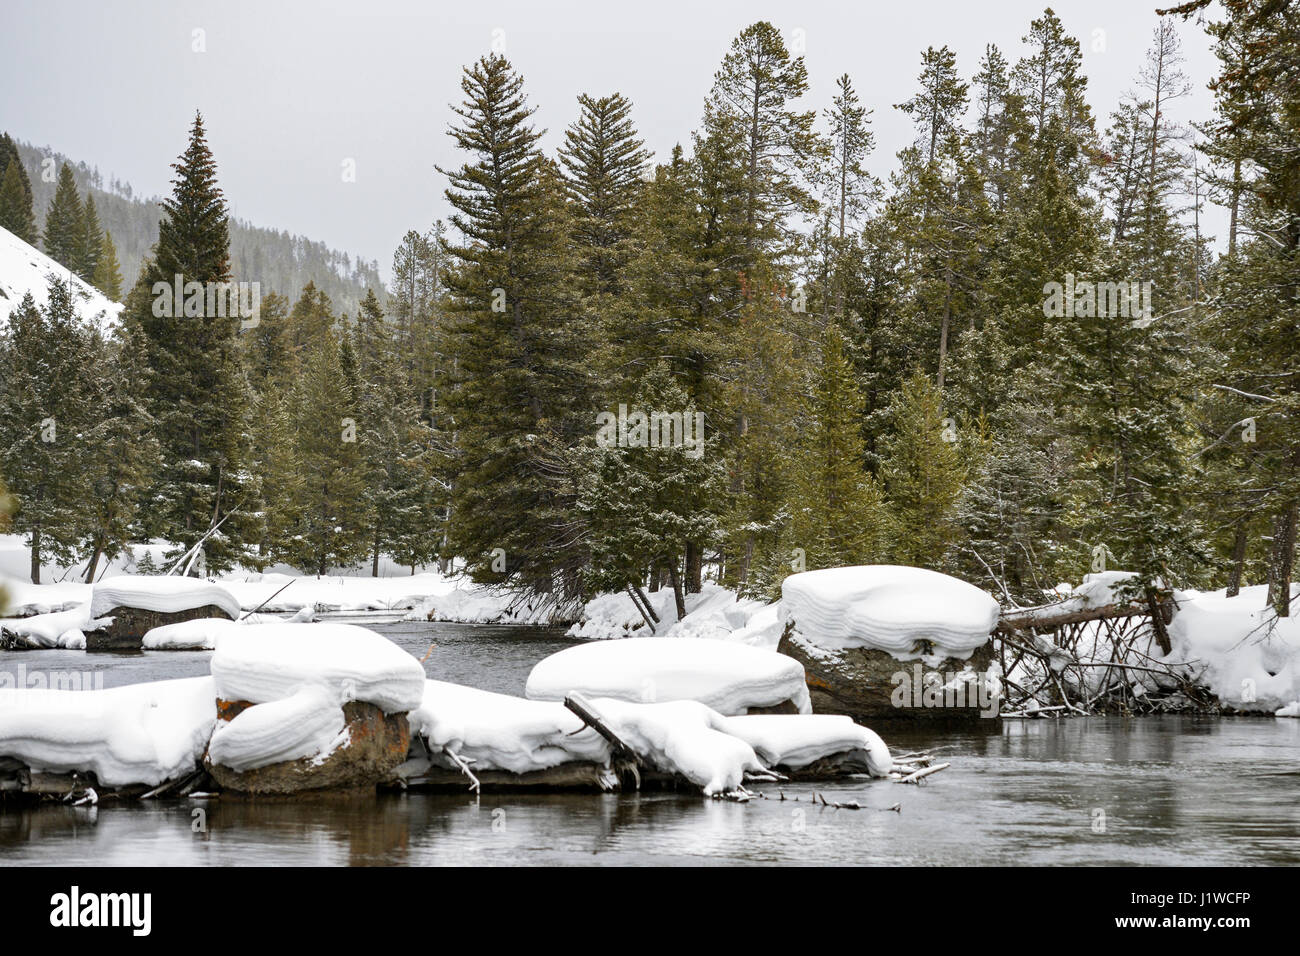 Firehole river in winter, surrounded by snow covered wilderness of Yellowstone National Park, Wyoming, USA. - Stock Image